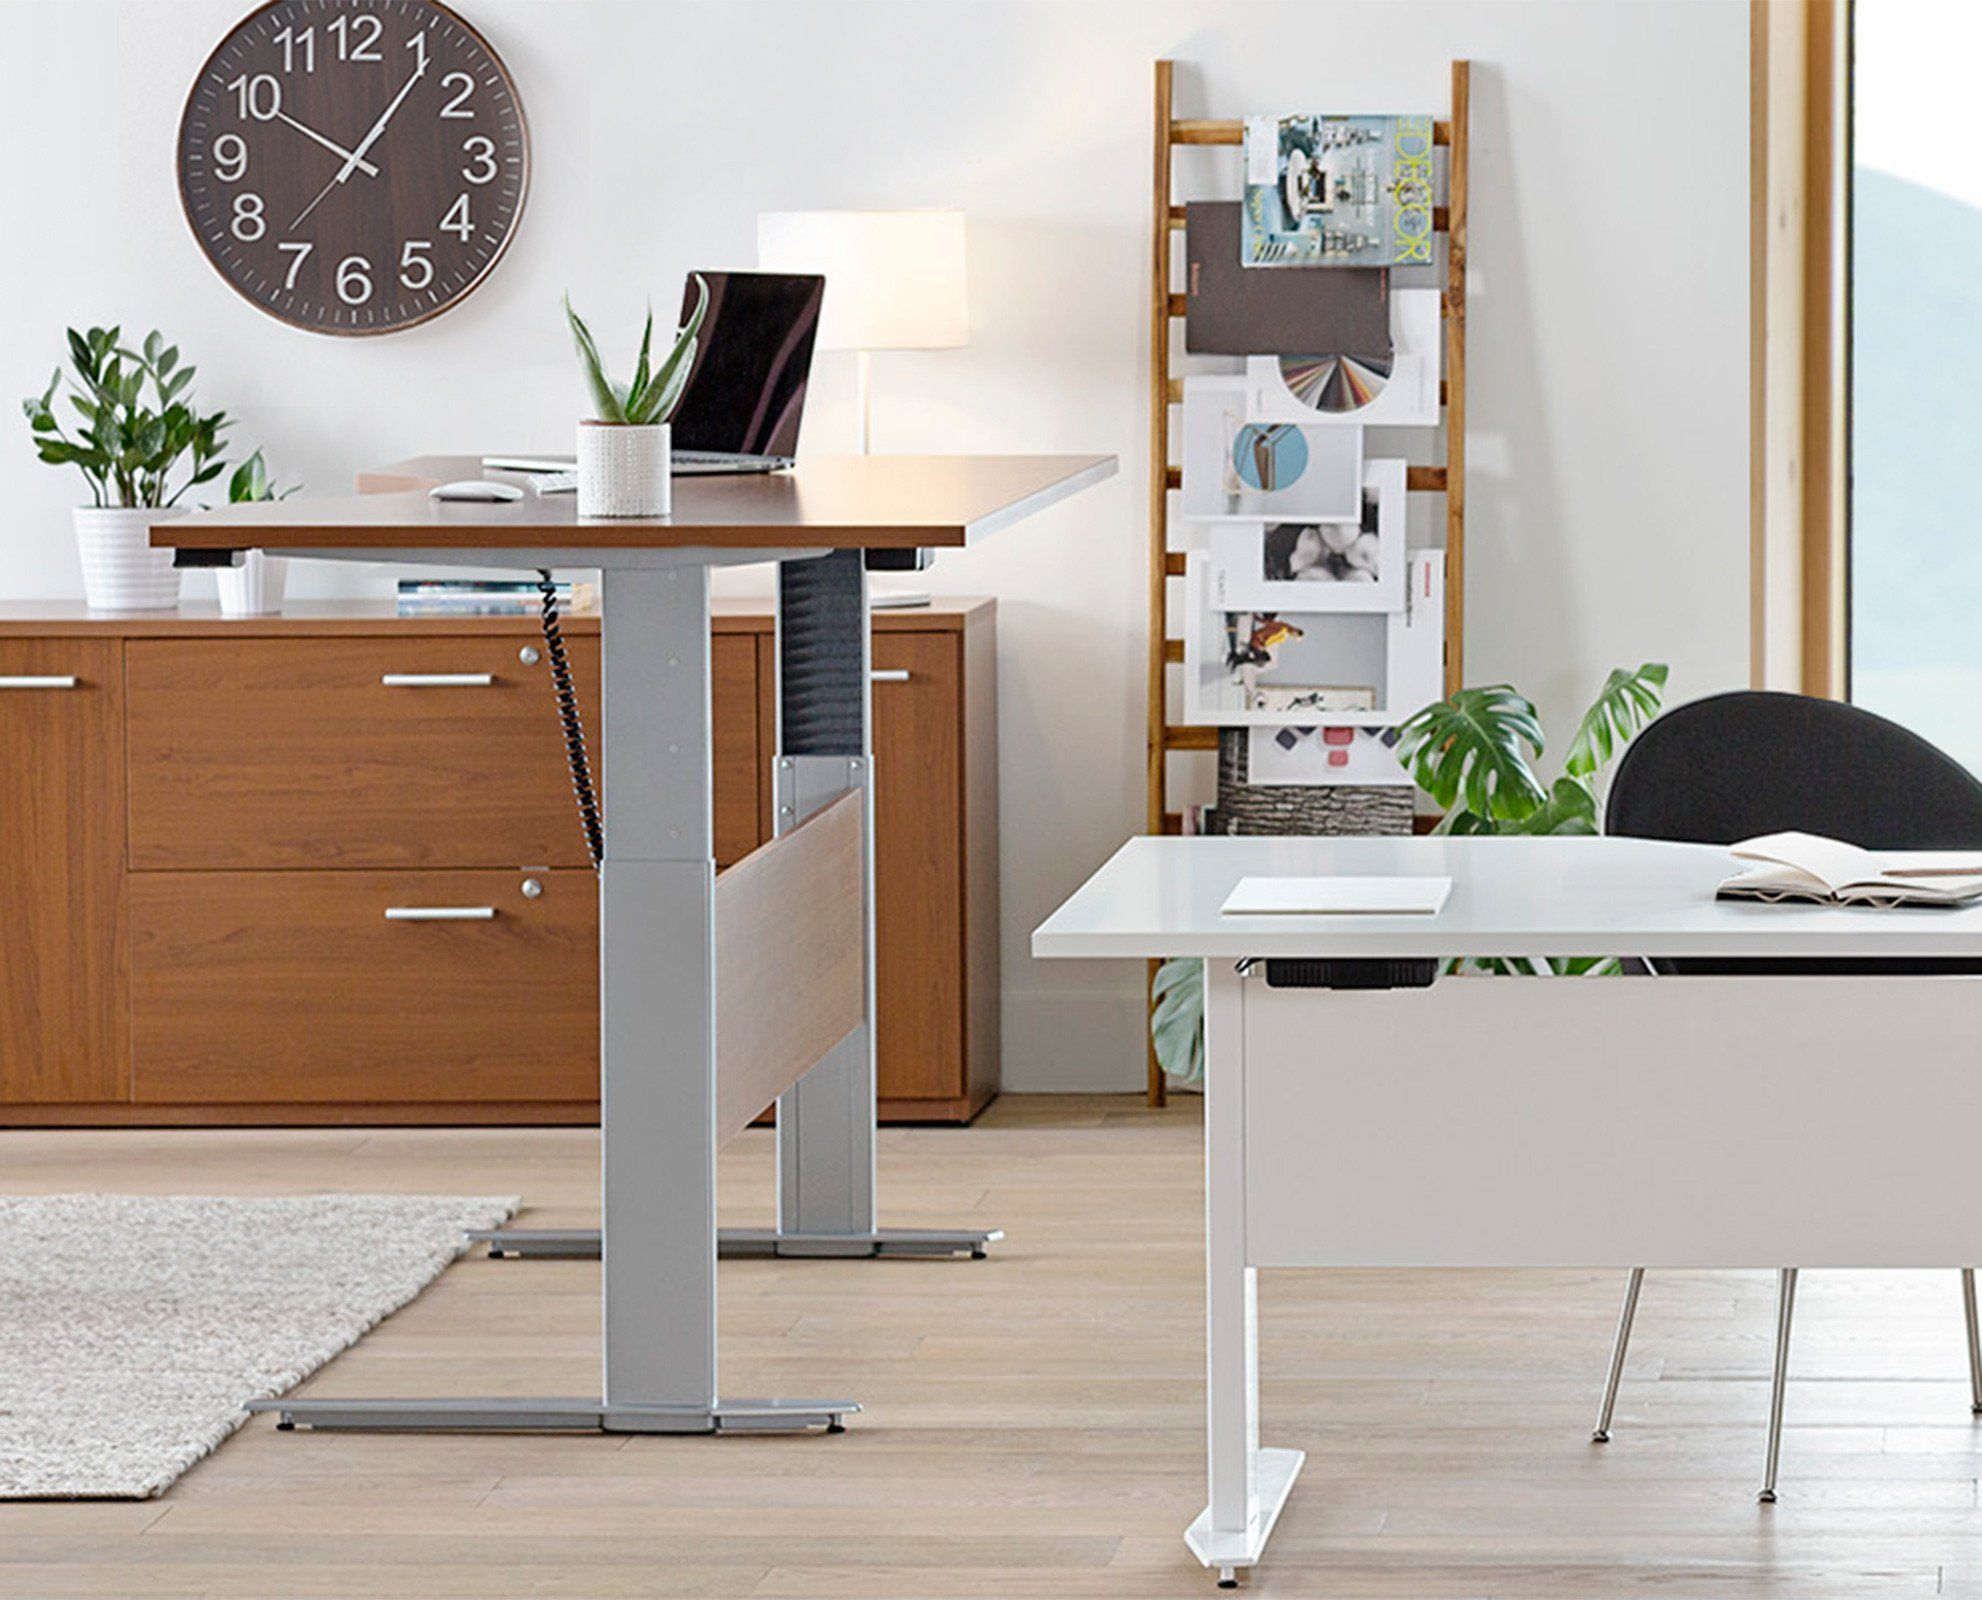 """NETWORK PLUS 70.9"""" SIT STAND DESK Sit stand desk, Home"""